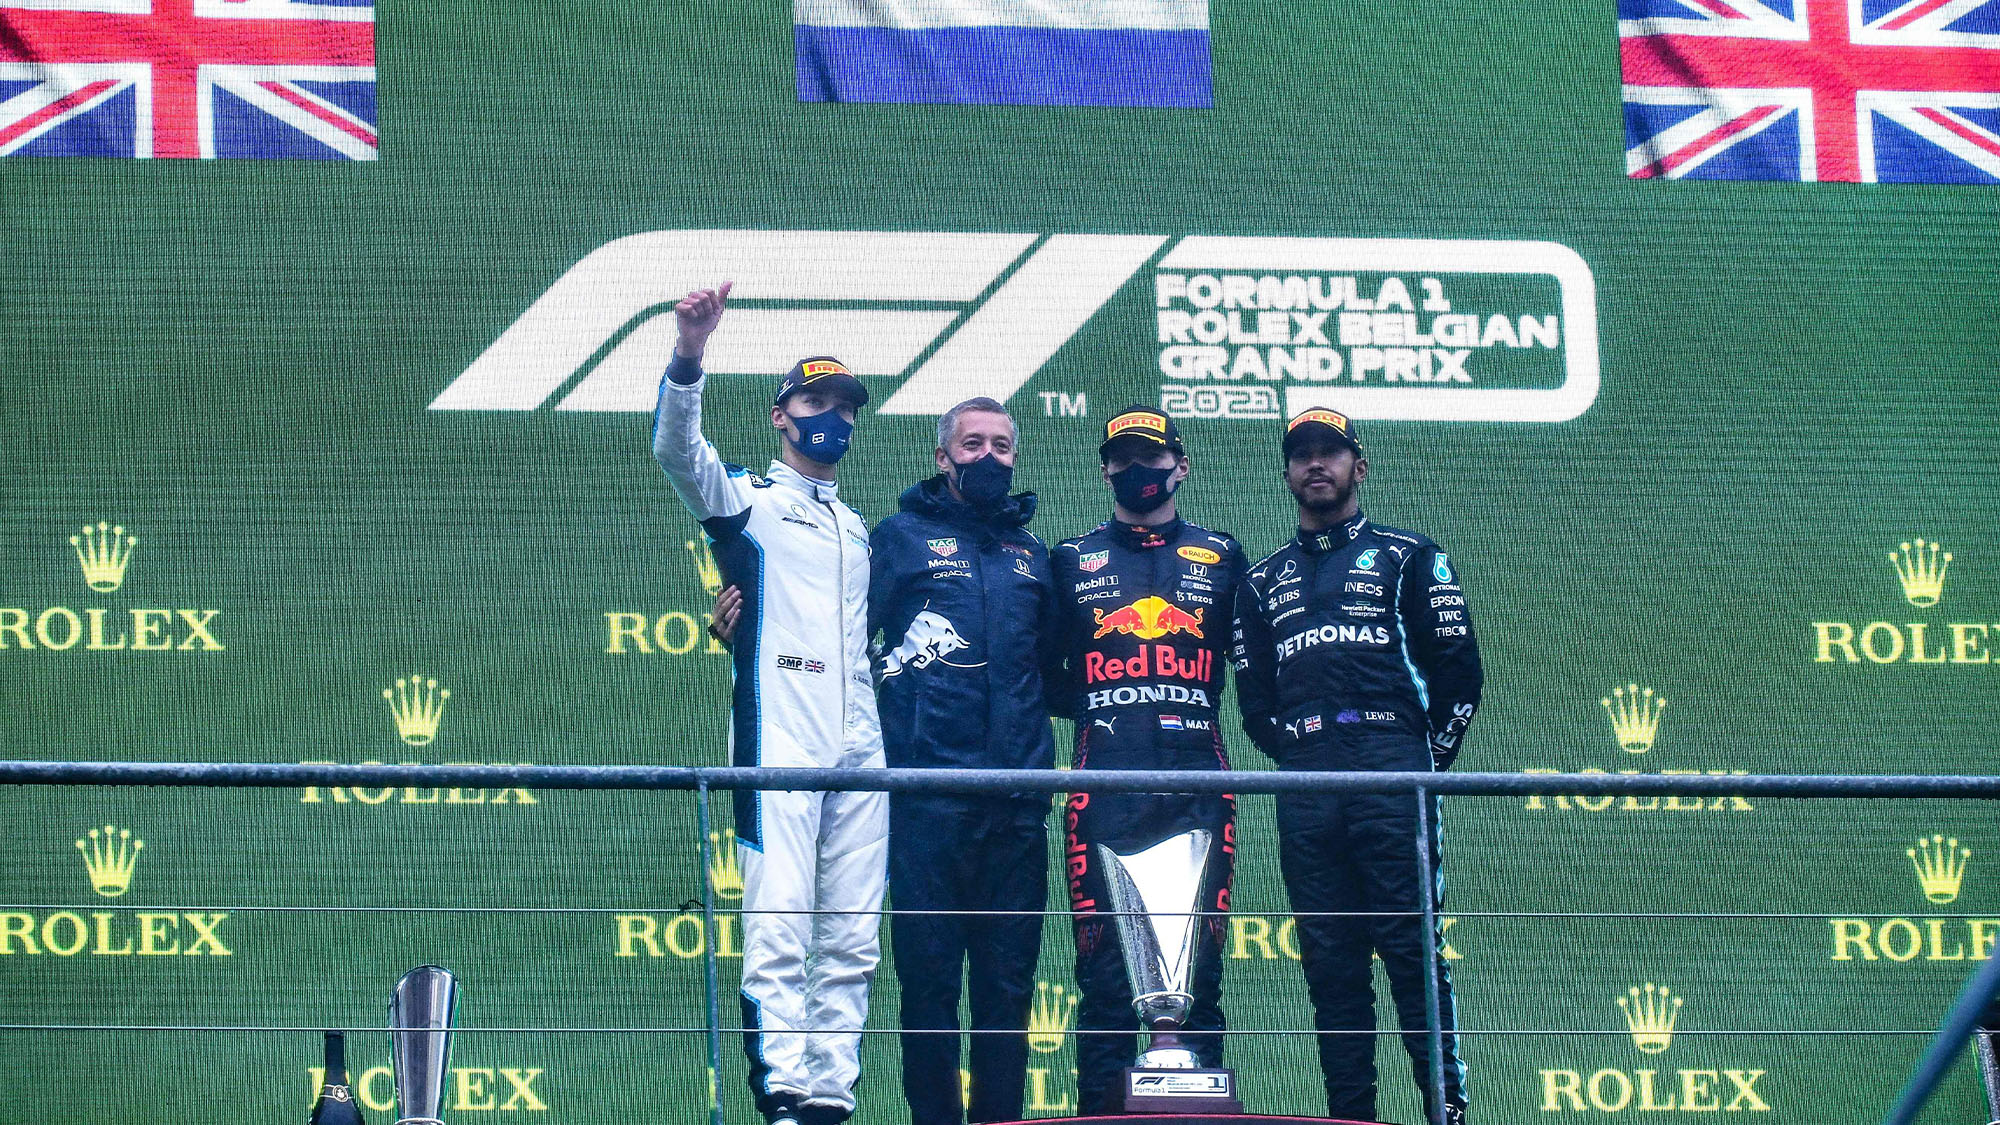 Russell Verstappen and Hamilton on the podium after 2021 Belgian Grand Prix